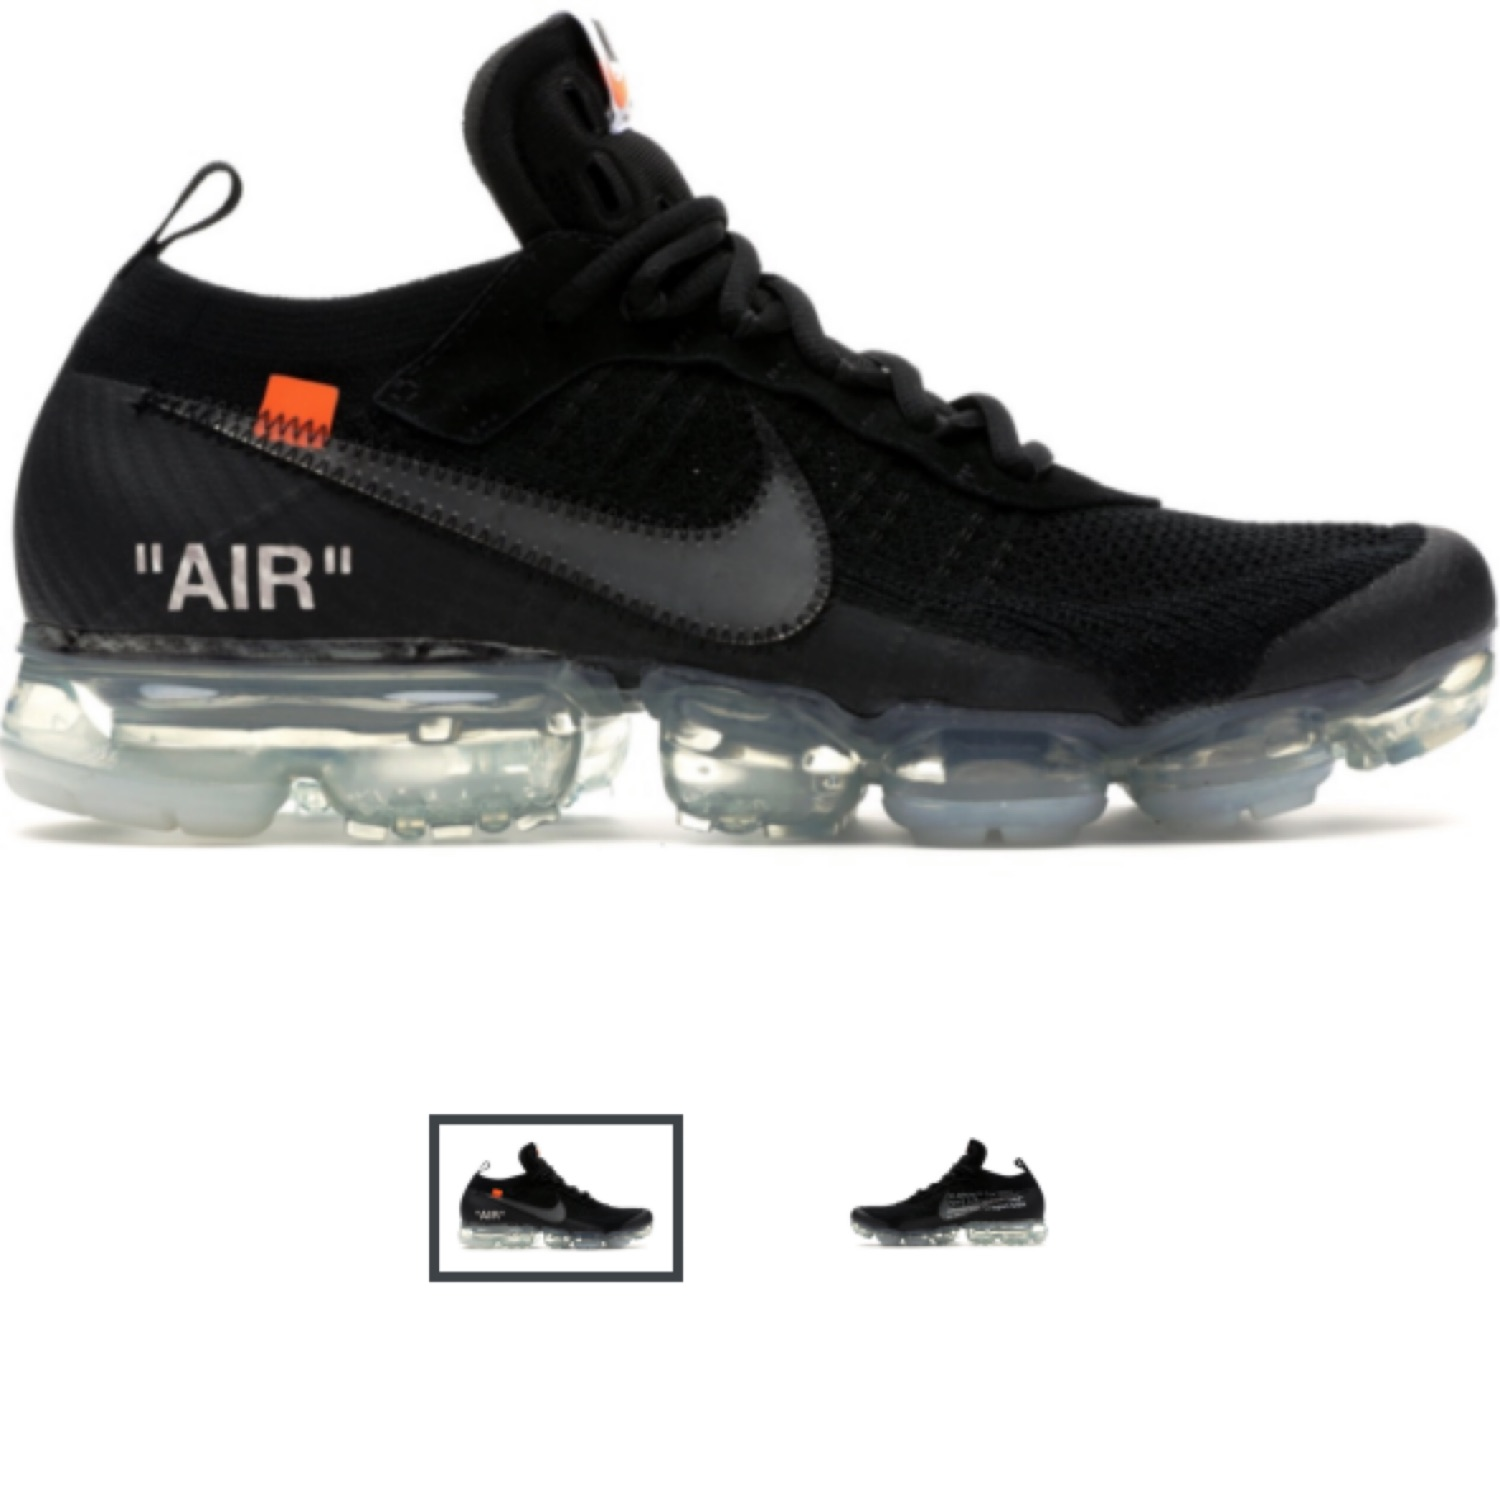 Air Vapormax Nike Off White Black kiuOXPZ